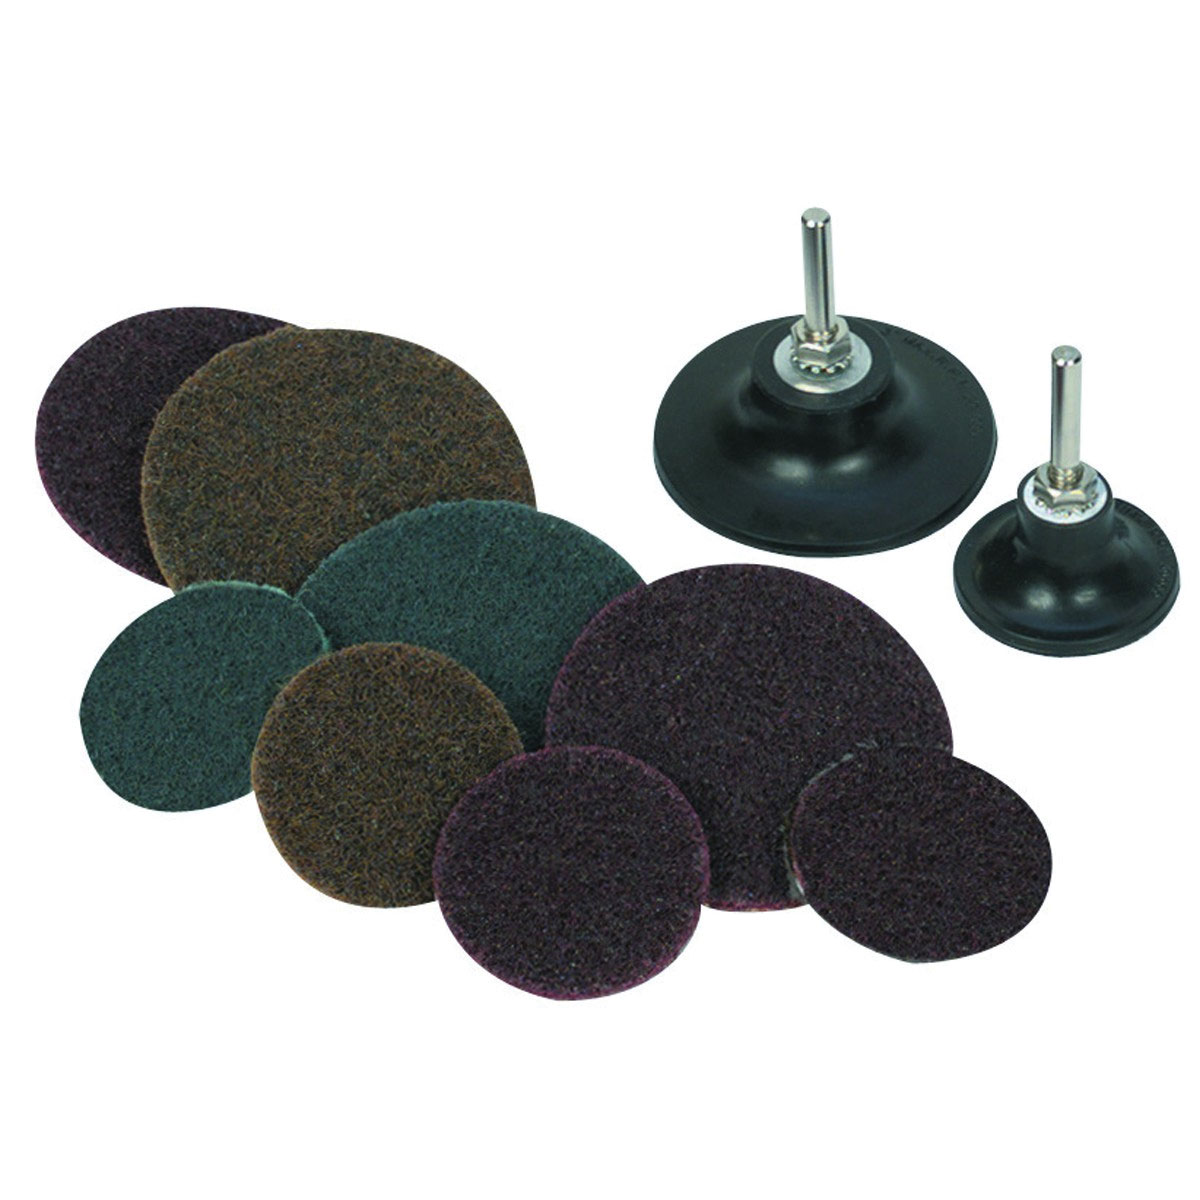 2 In 3 Fiber Disc Sanding Kit